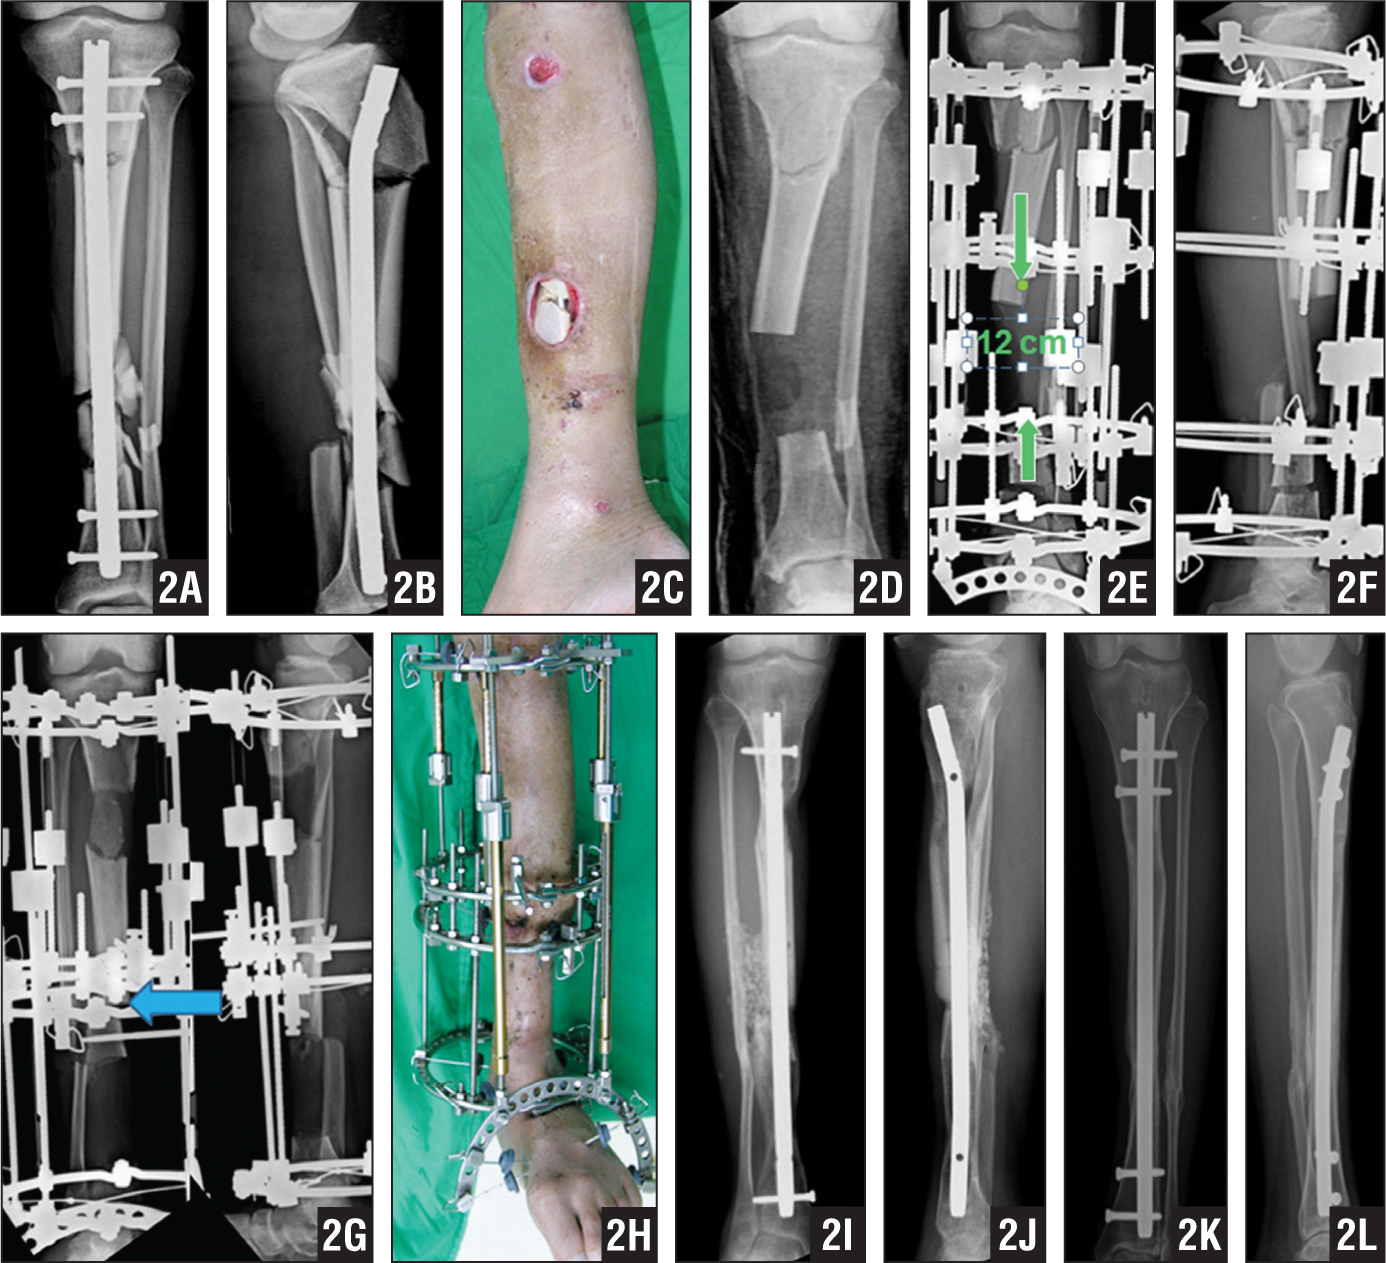 The patient sustained an open segmental tibial shaft fracture with infection and had been treated with intramedullary locked nail at another institution approximately 3 months before presentation. The staged protocol of the clinic was applied. Anteroposterior (A) and lateral (B) radiographs and photograph (C) showing the condition on arriving. Anteroposterior radiograph showing postoperative status after radical debridement, removal of locked nails, sequestrectomy, and residual 12 cm of bone defect (D). Anteroposterior (E) and lateral (F) radiographs showing that bone transport was performed with a trifocal-approach. Anteroposterior (left) and lateral (right) radiographs showing visible callus (G). Photograph taken on arrival at the docking site showing Ilizarov's apparatus with an extended fixator for forefoot anchorage (H). Anteroposterior (I) and lateral (J) radiographs obtained after removing the external skeletal fixator showing intramedullary locked nail and bone consolidation after Harmon's procedure. Anteroposterior (K) and lateral (L) radiographs showing bony union at 1-year follow-up.